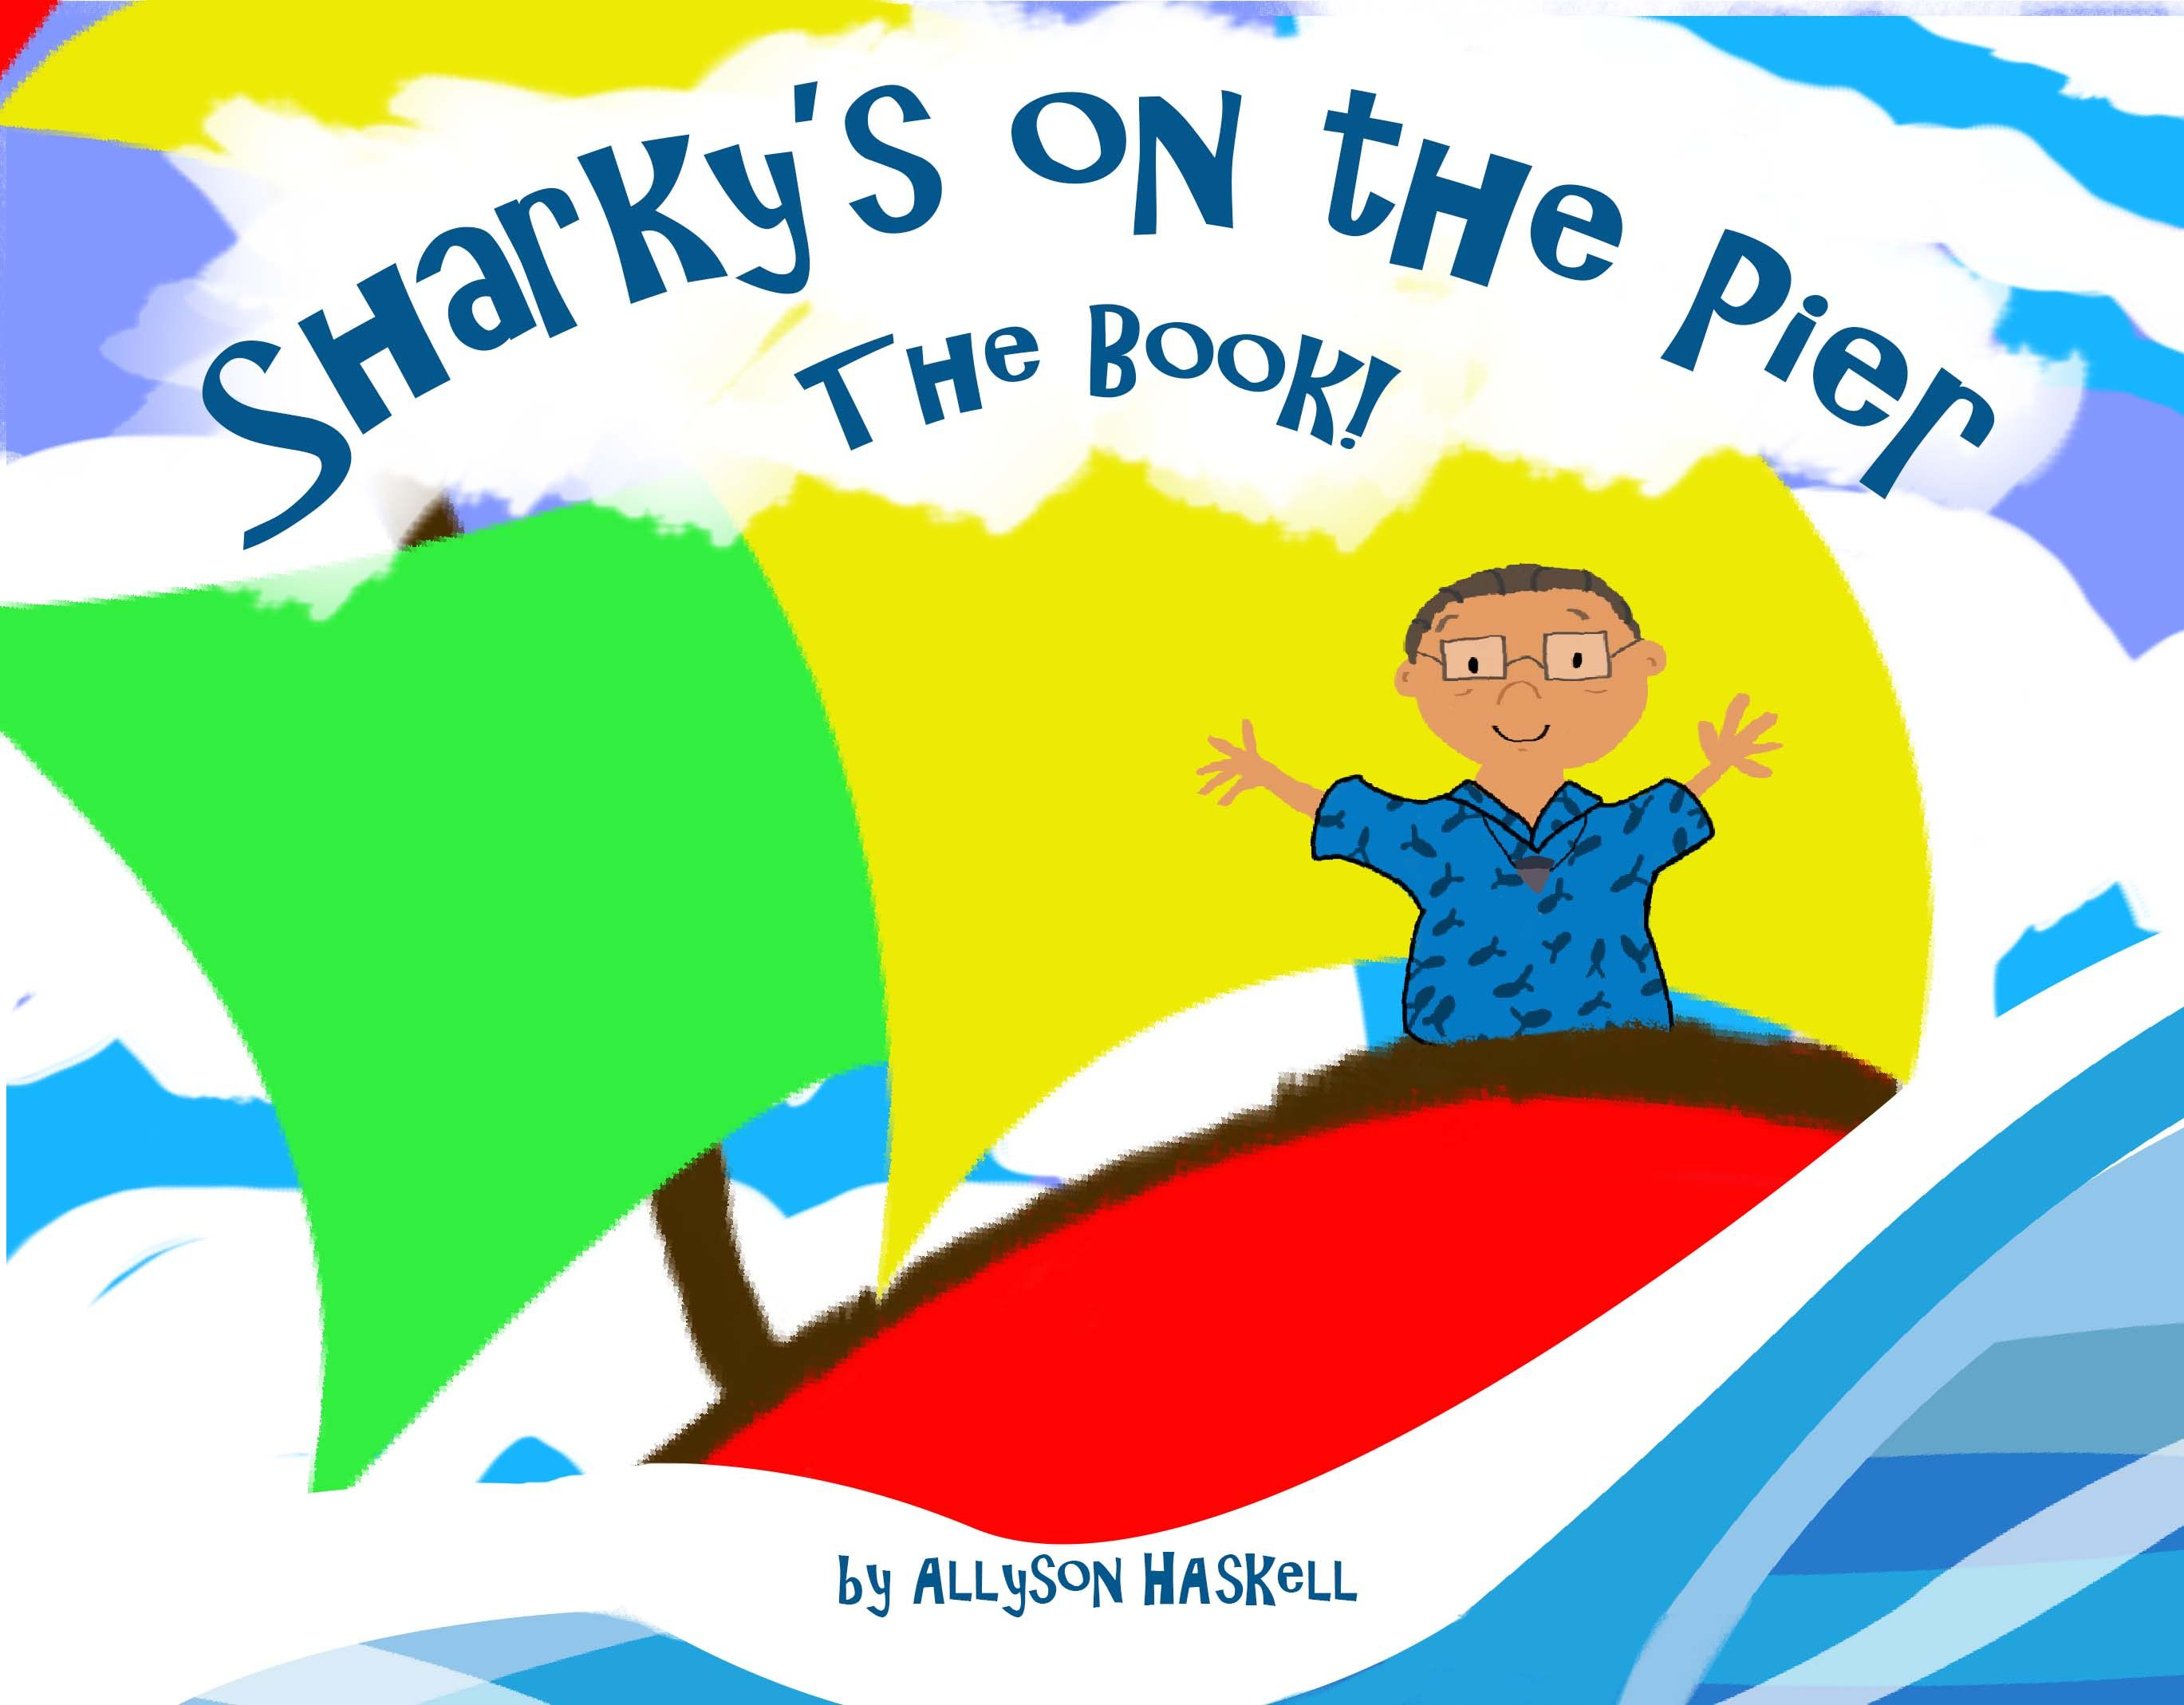 Sharky's on the Pier. The Book!